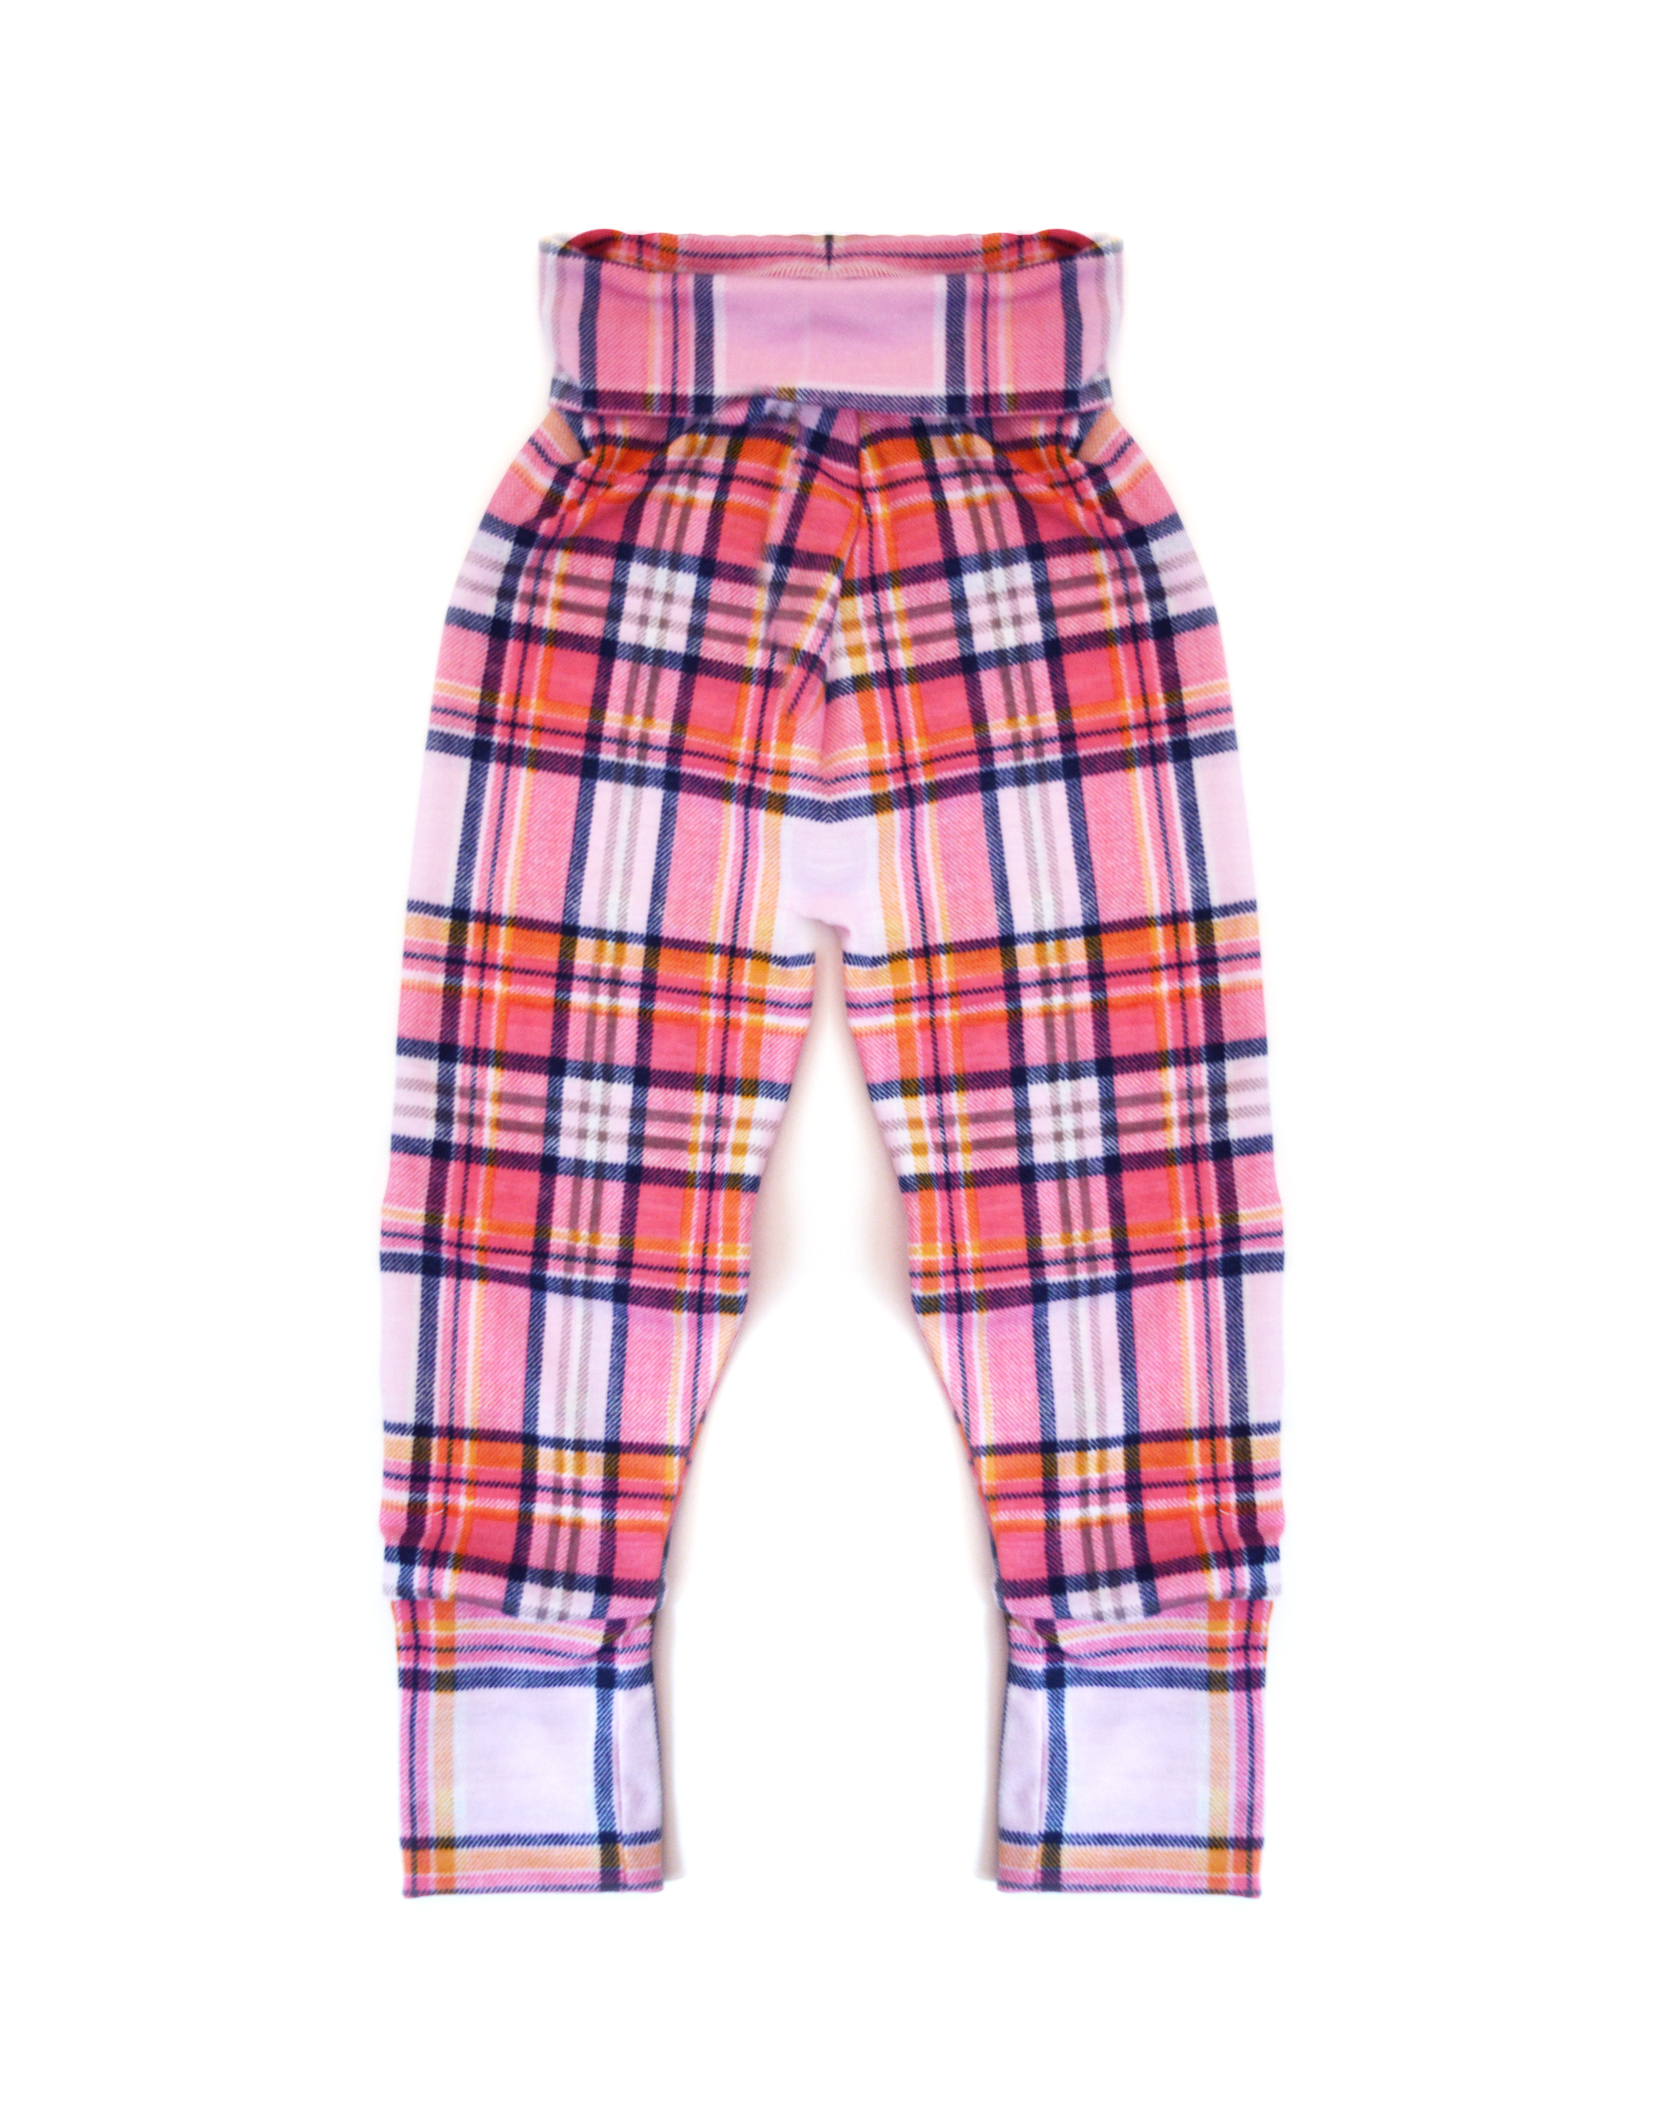 Little Sprout Pants™ Pink Tartan - Slim fit - Cotton 00682